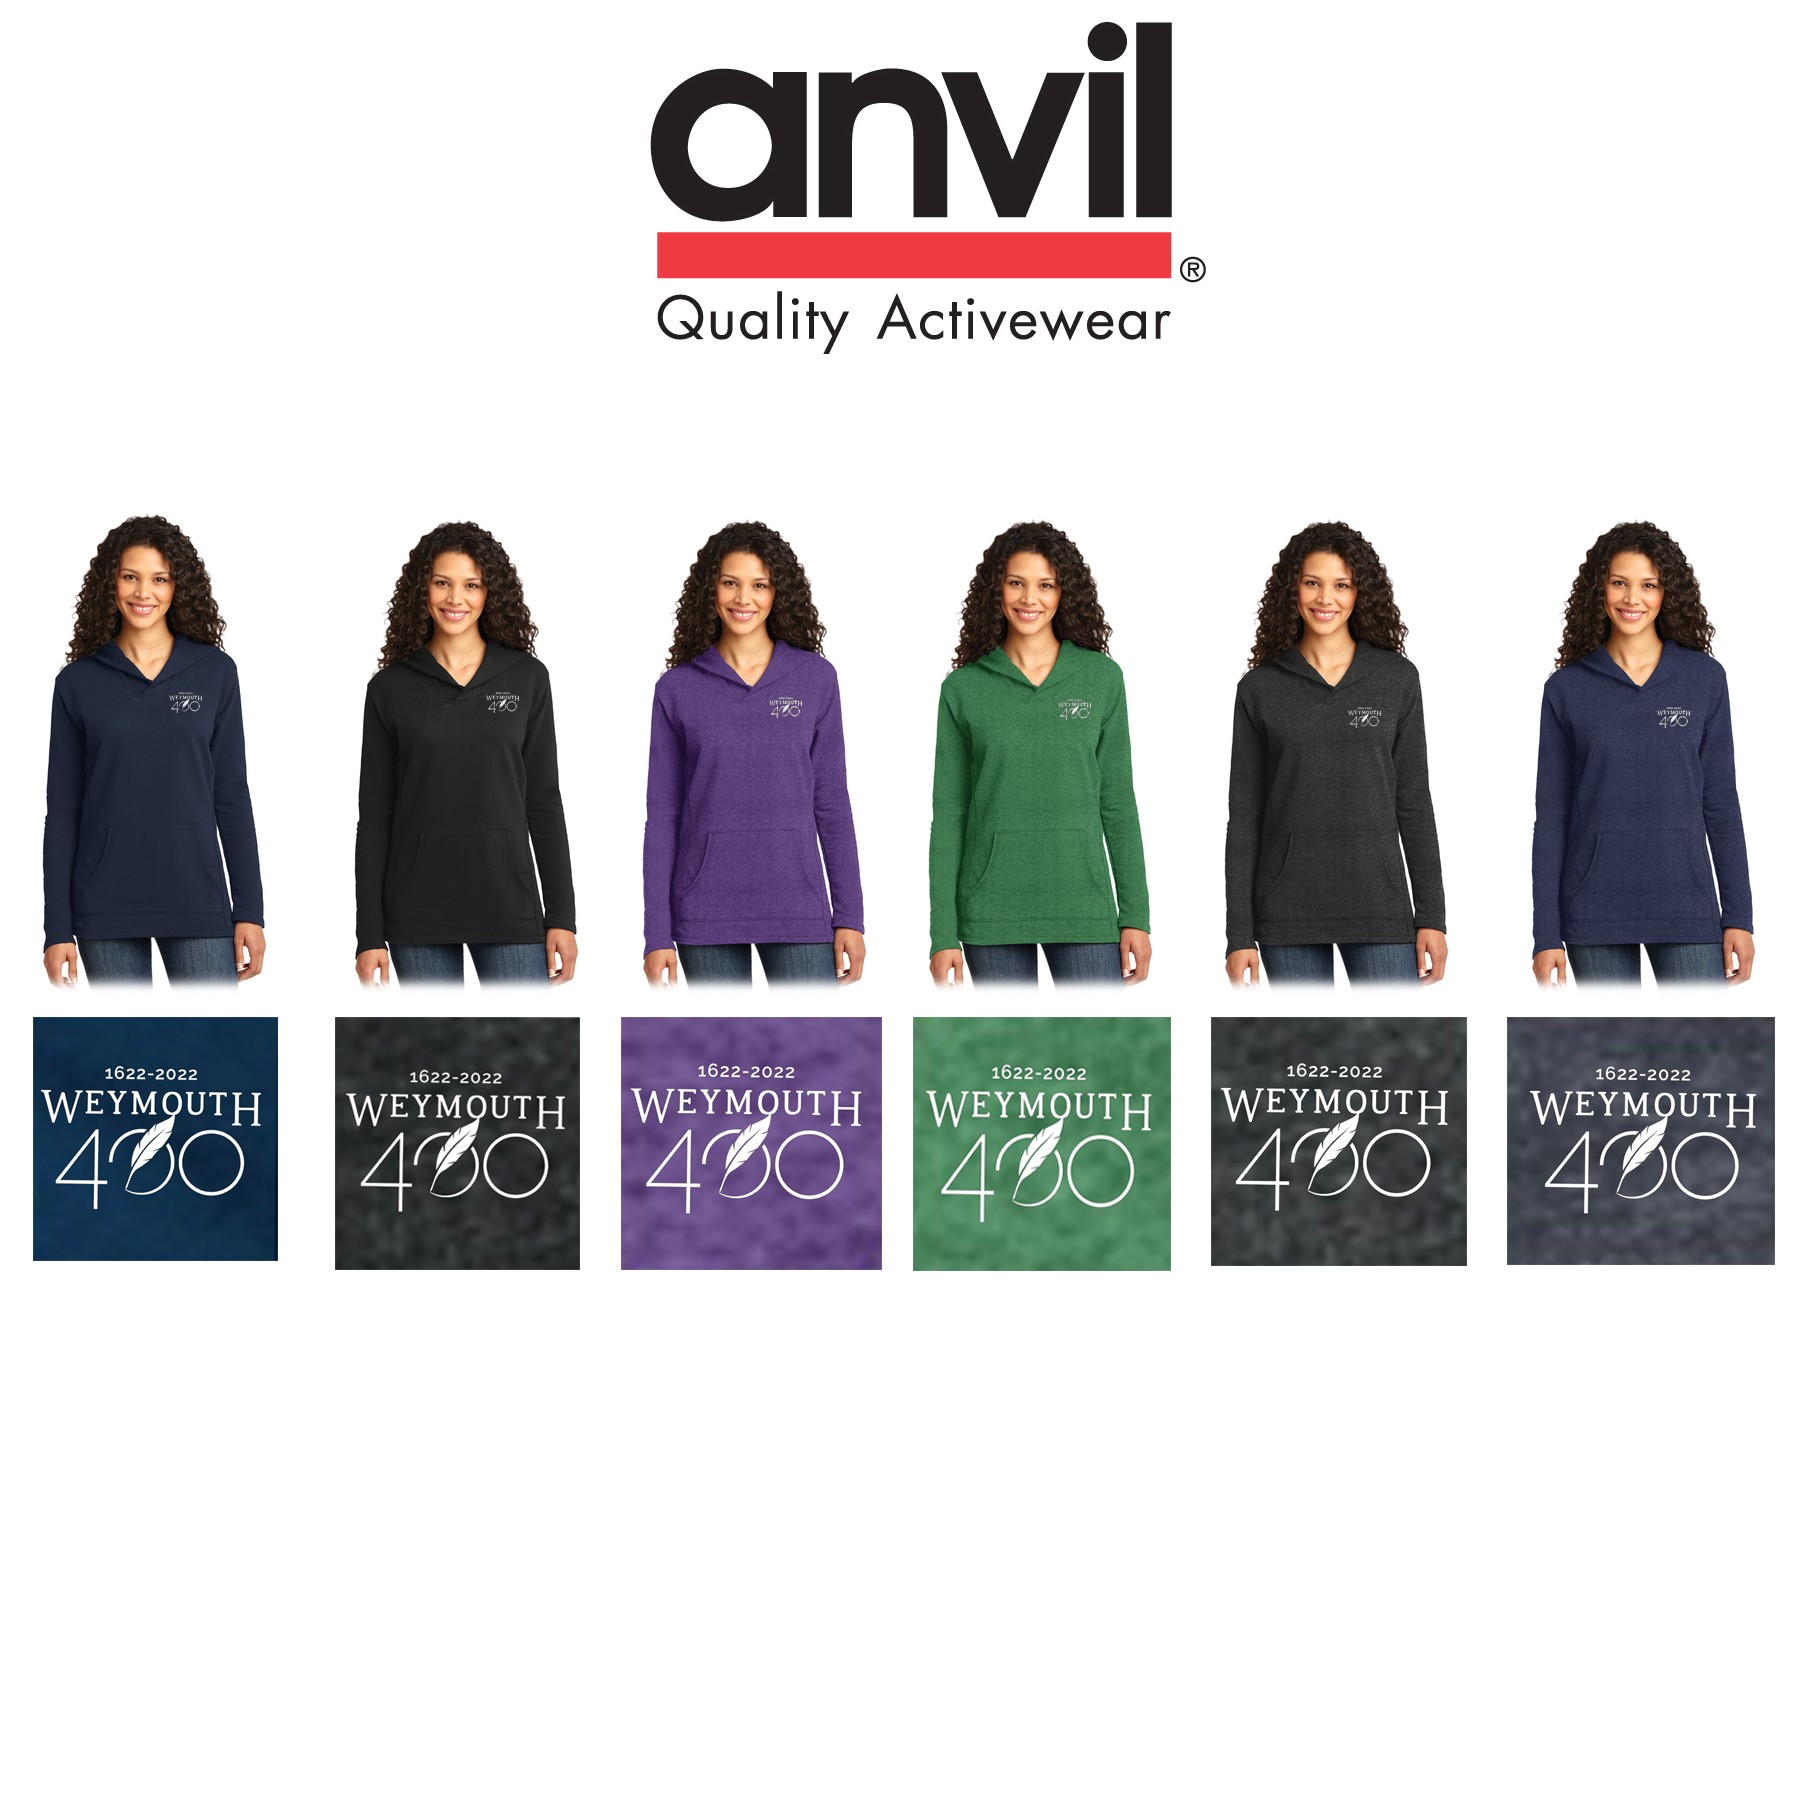 Weymouth 400 Anvil® Ladies French Terry Pullover Hooded Sweatshirt